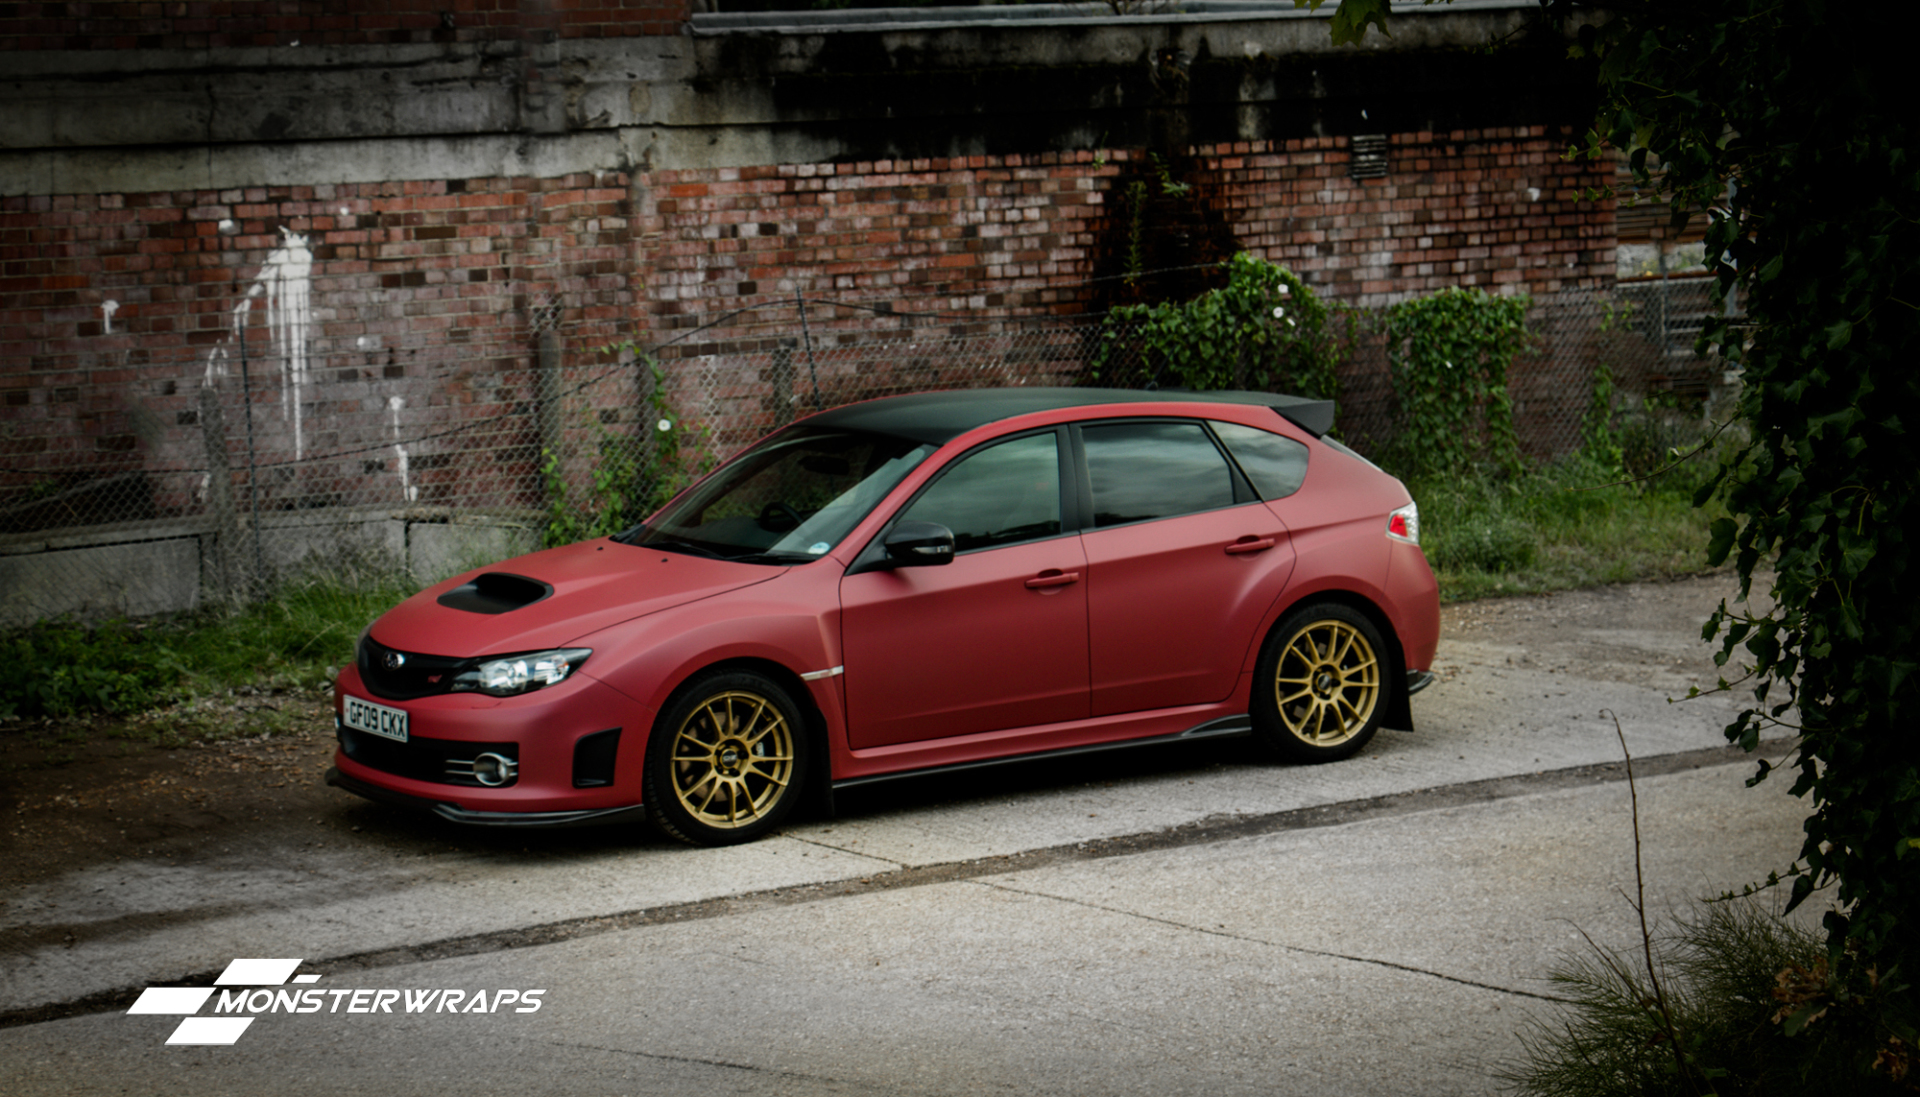 Subaru Impreza WRX Matte metallic red wrap